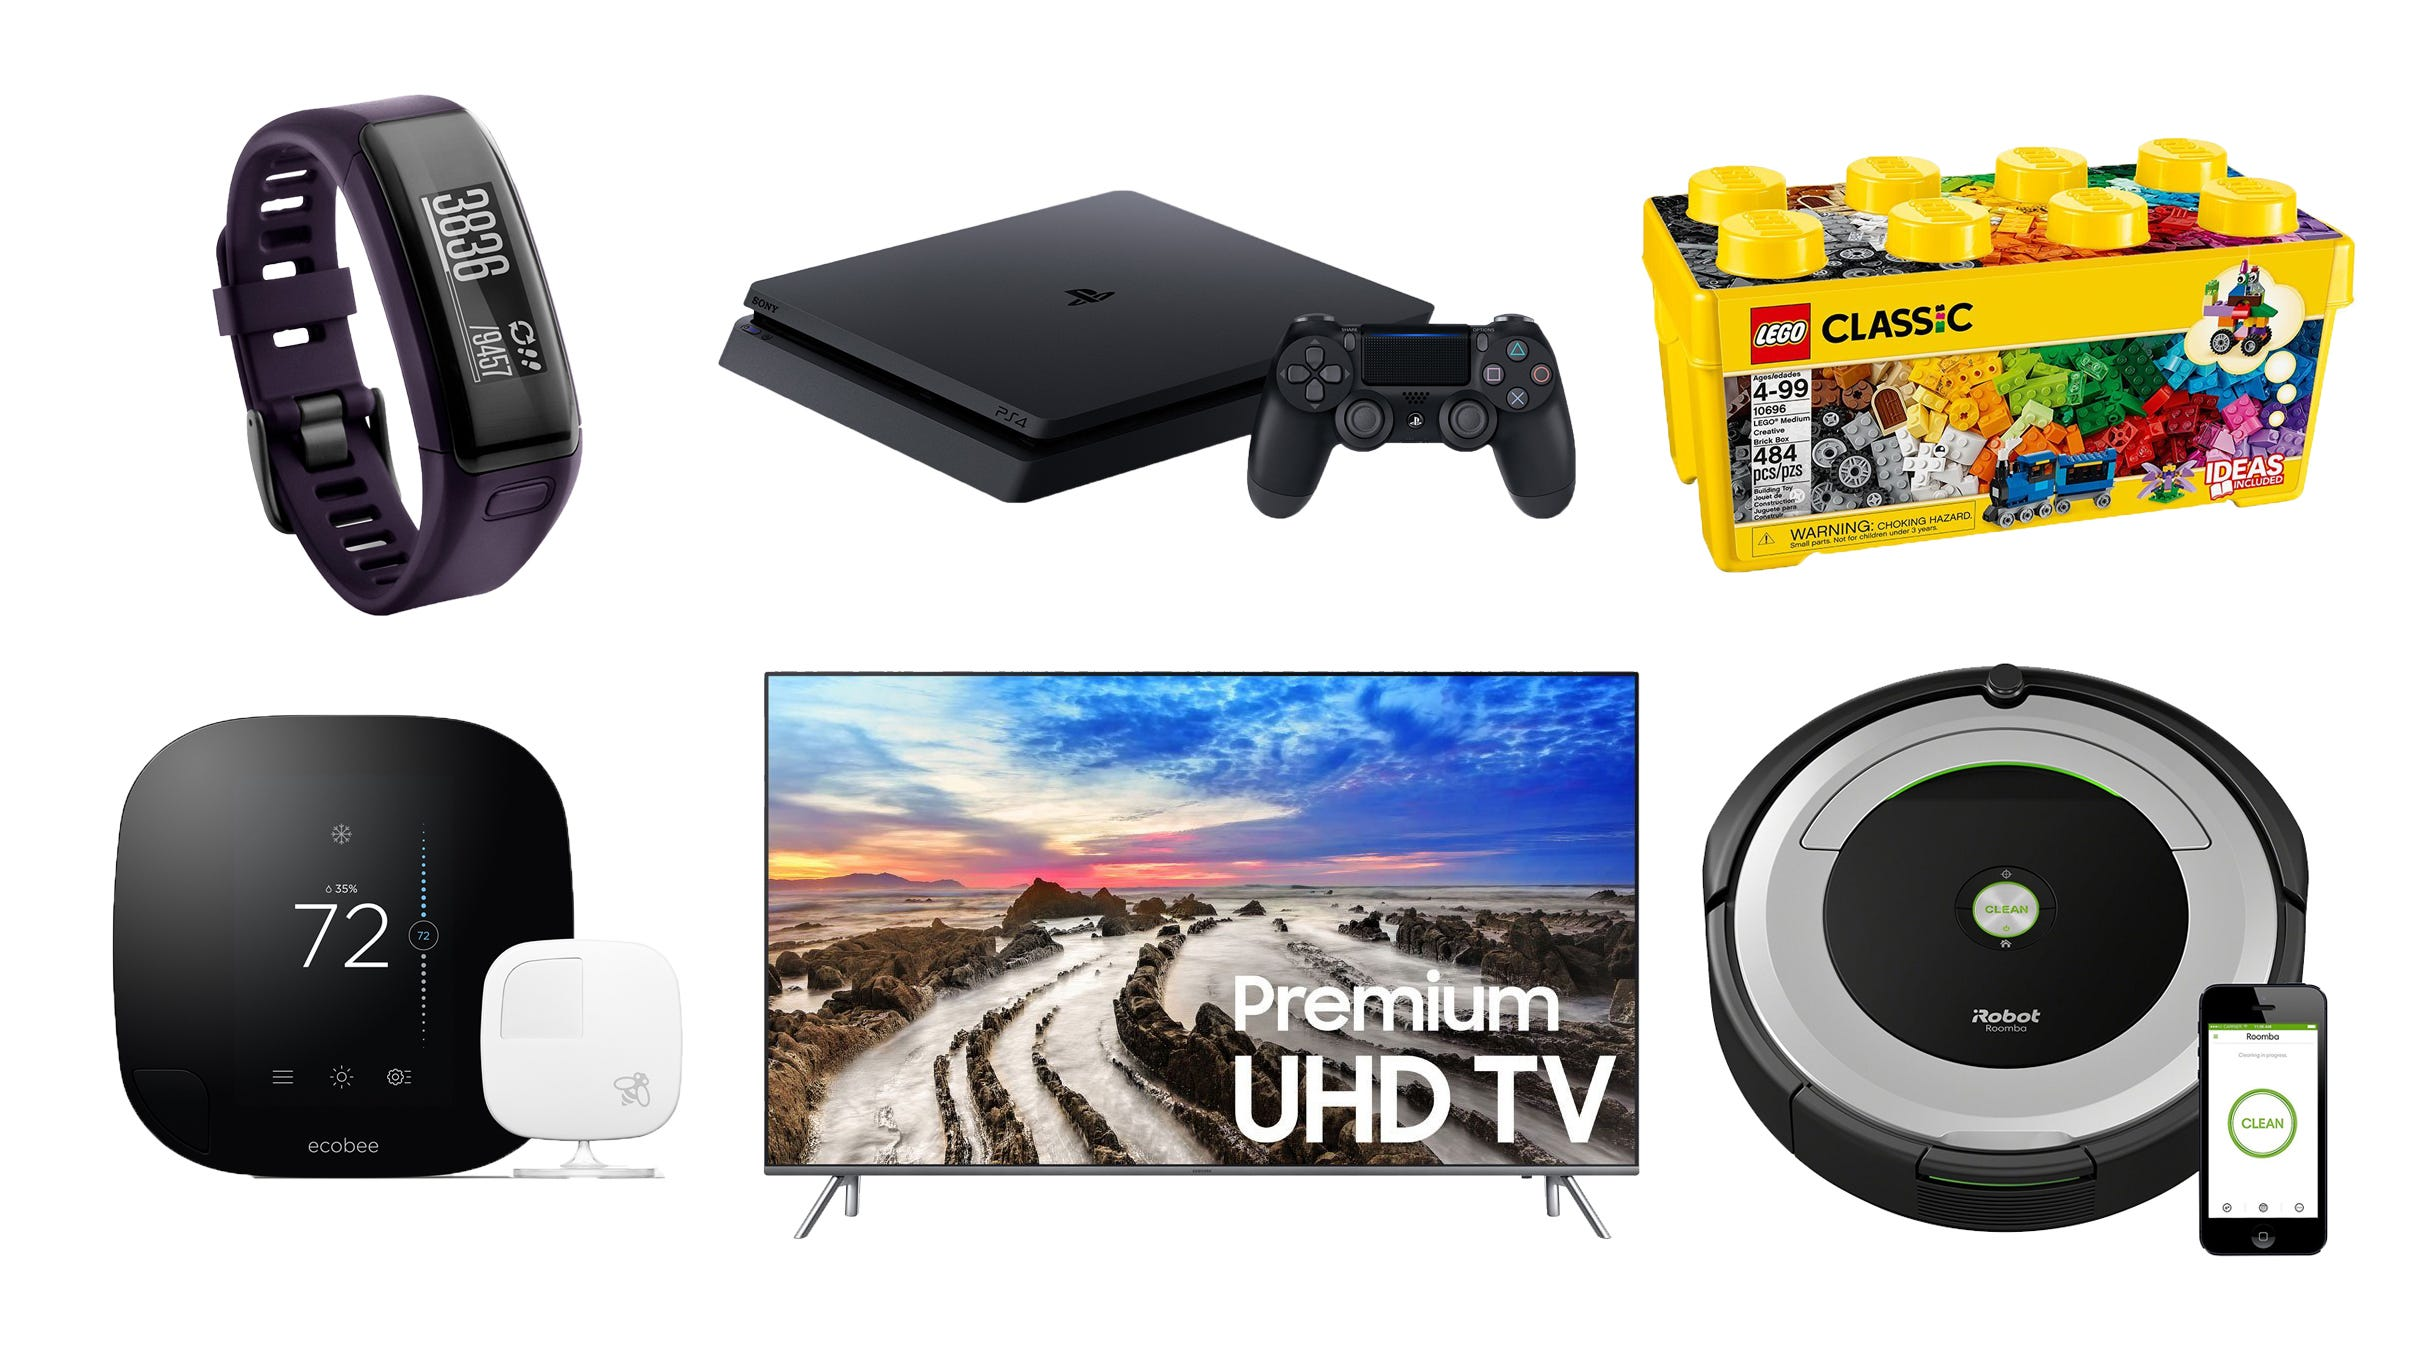 The 10 best deals you can get from Amazon's Black Friday Countdown Week